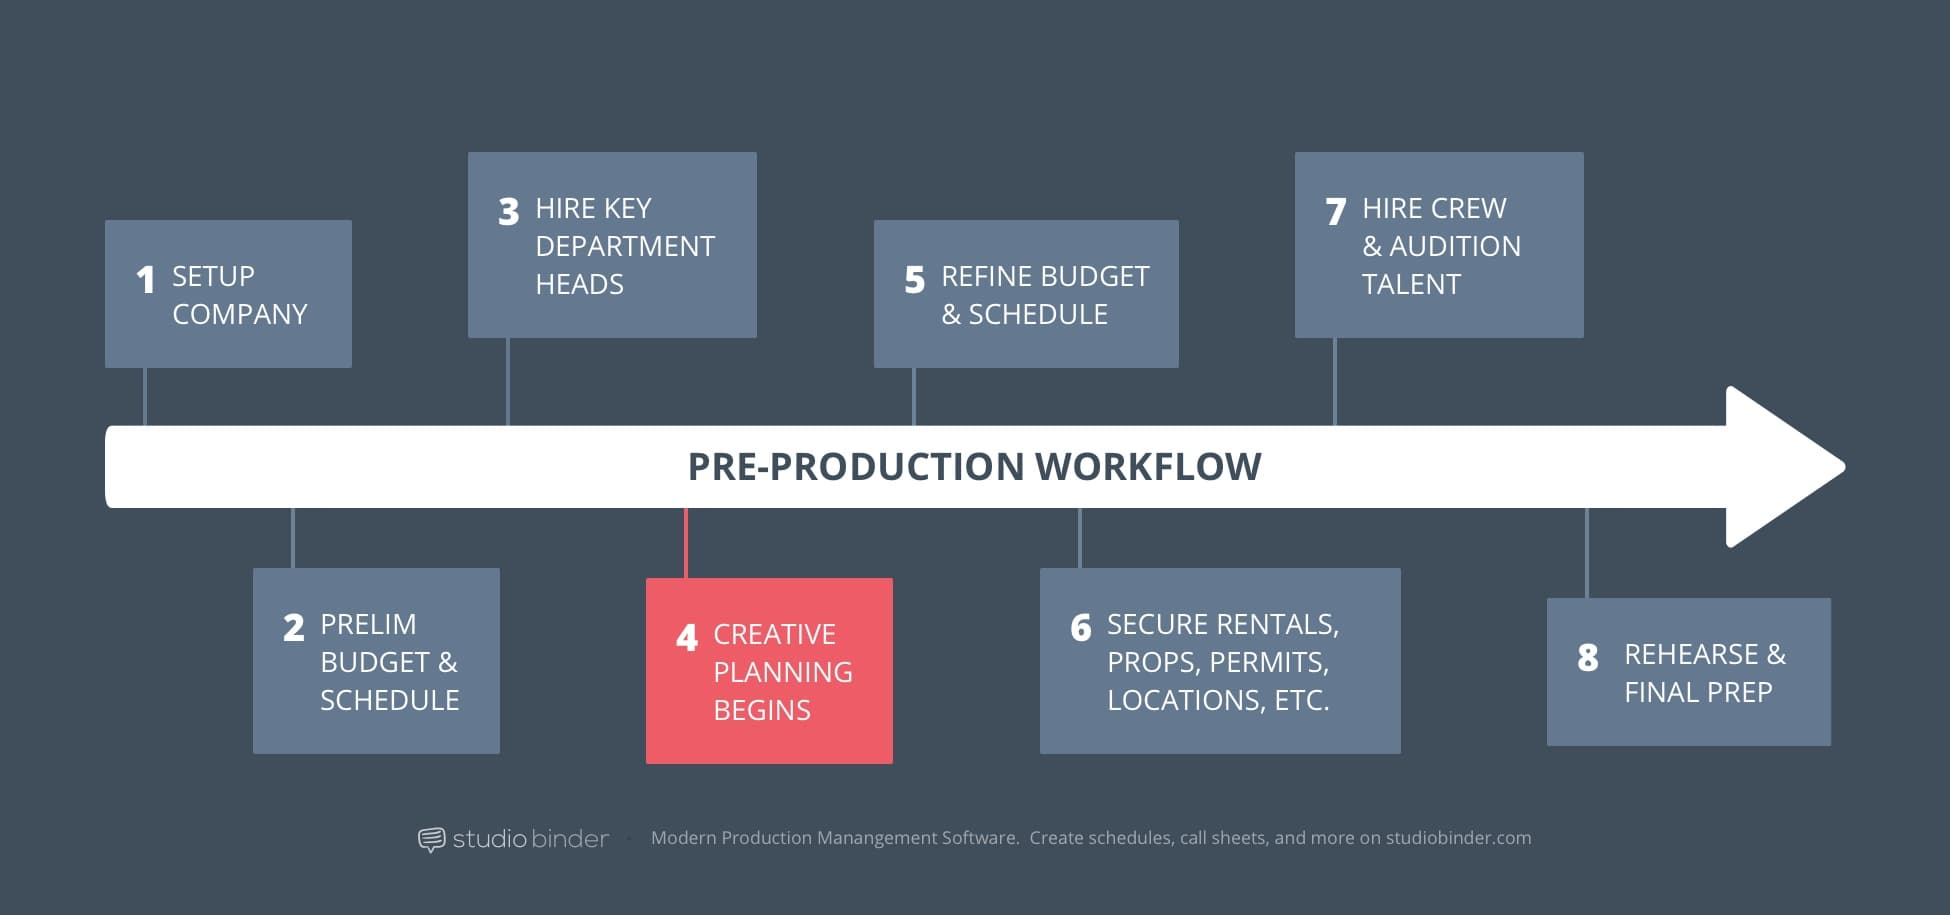 4 - StudioBinder Pre-Production Workflow - Creative Planning